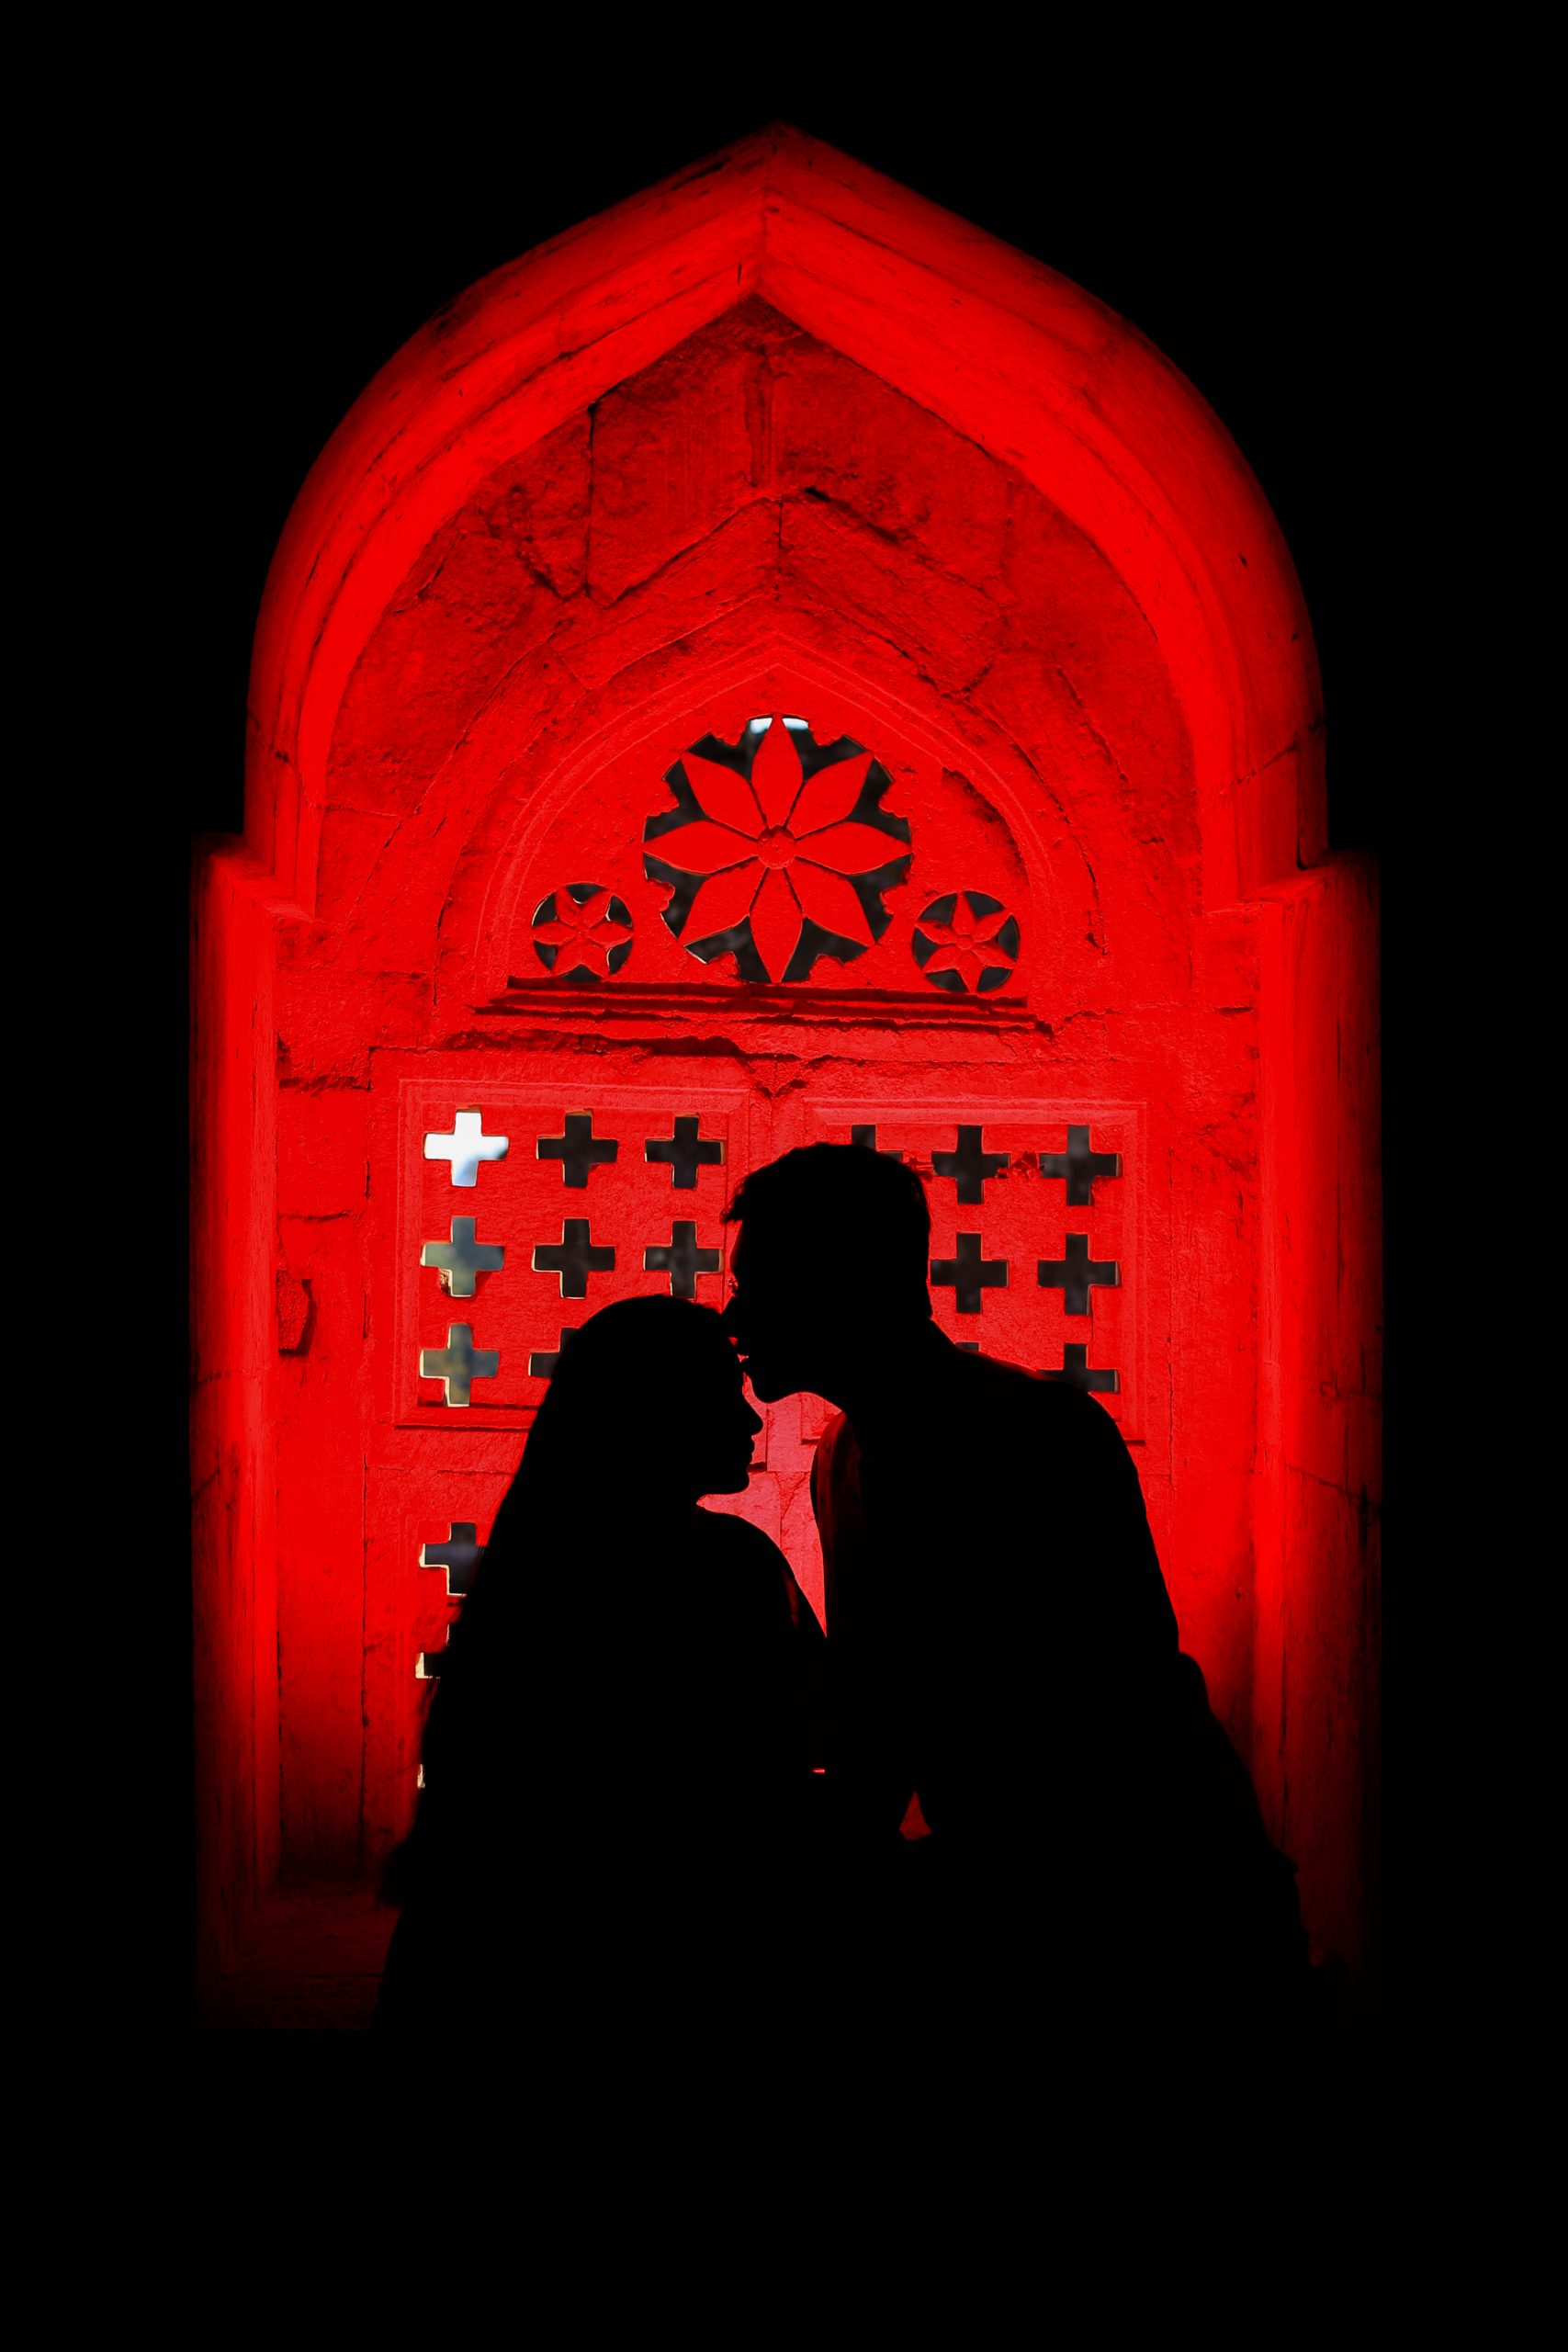 Couple in dark